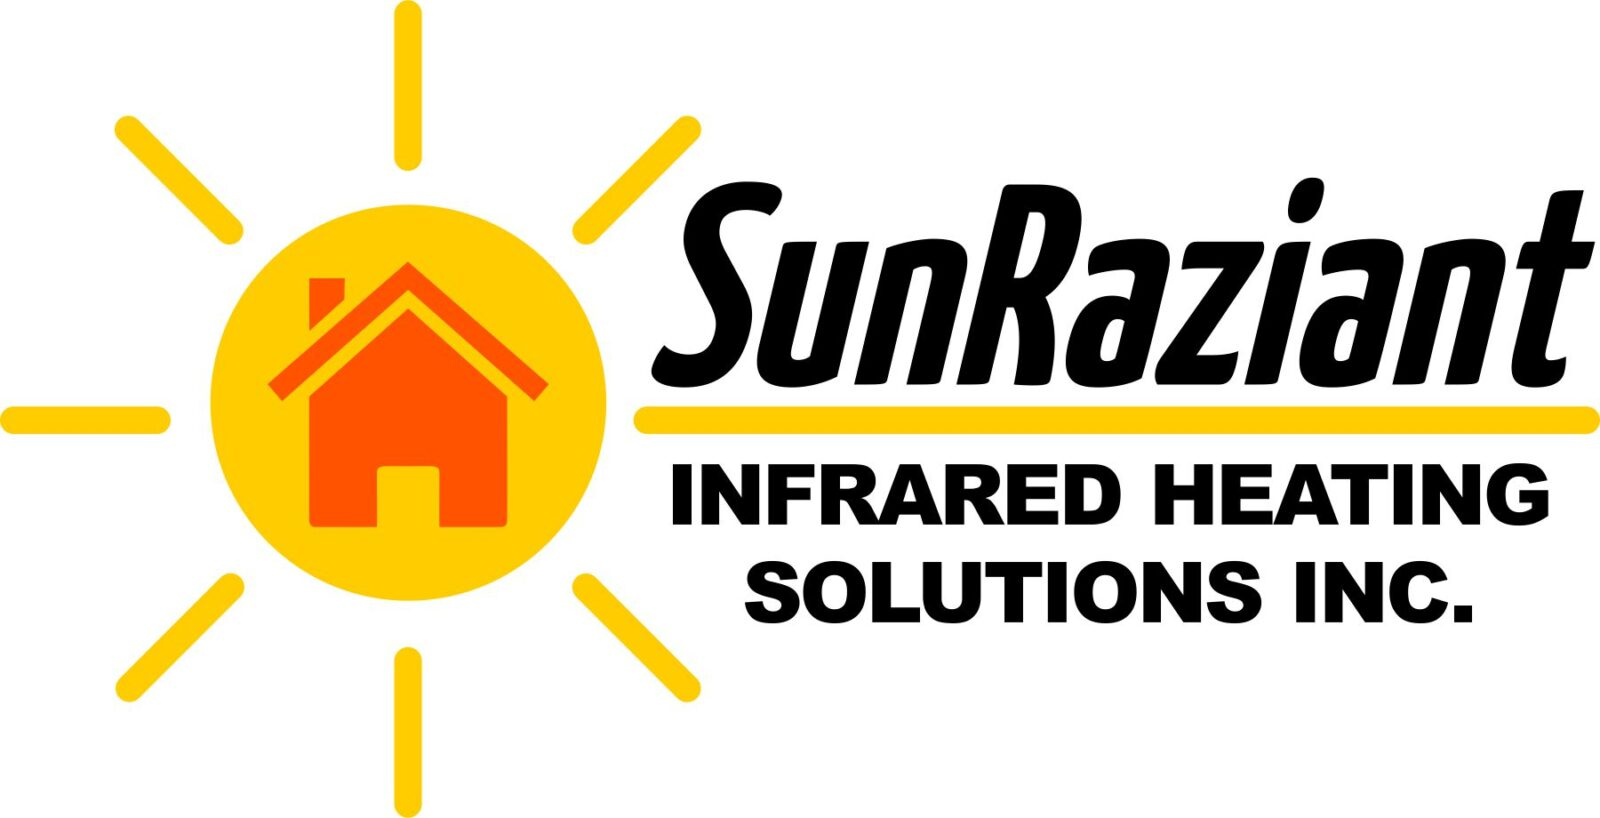 Ducoterra Infrared Heaters from SunRaziant Infrared Heating Solutions